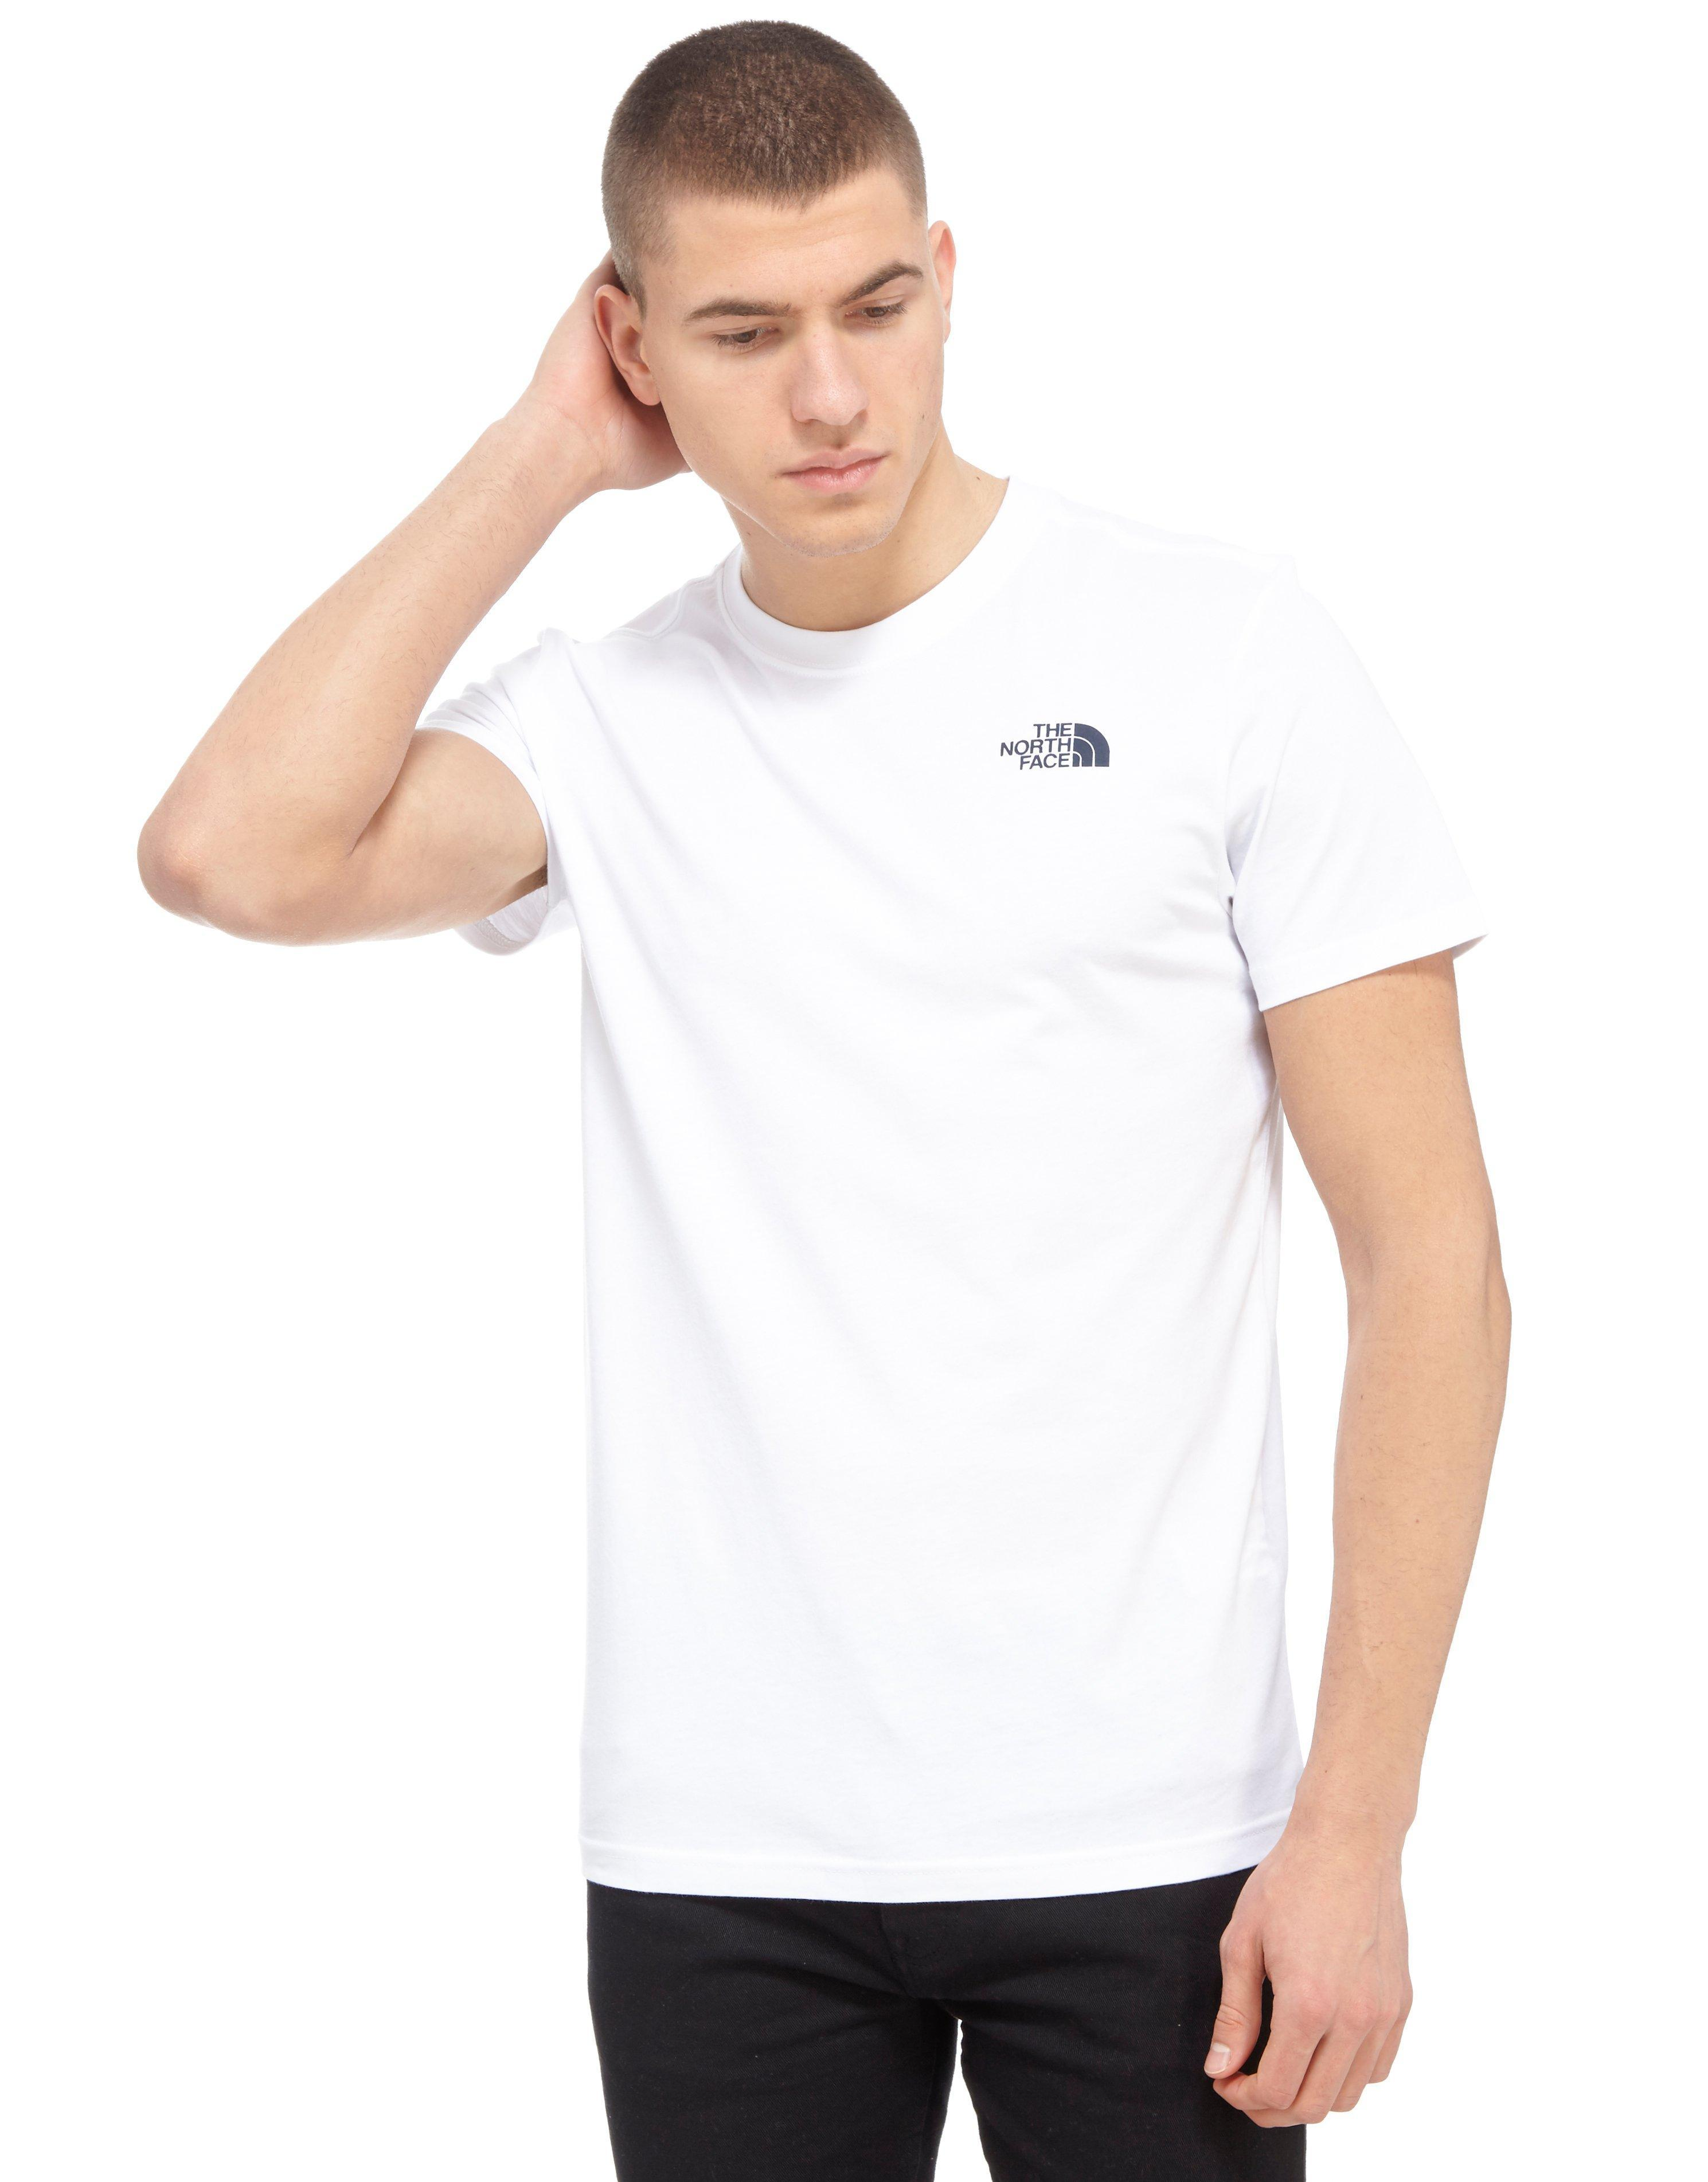 30b20145f The North Face Redbox Celebration T-shirt in White for Men - Lyst